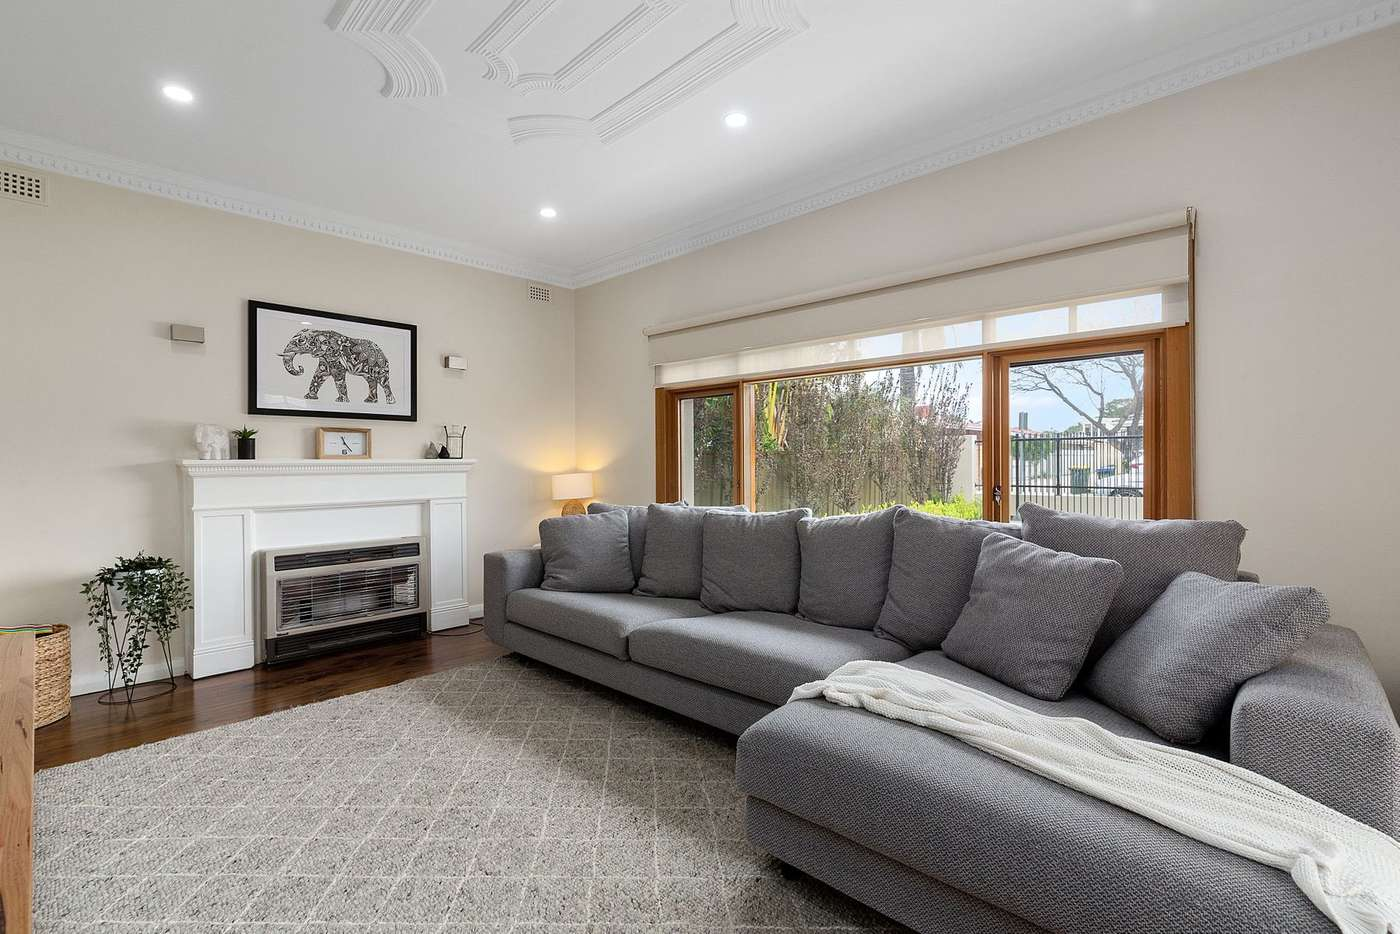 Sixth view of Homely house listing, 24 Glen Eira Street, Woodville South SA 5011